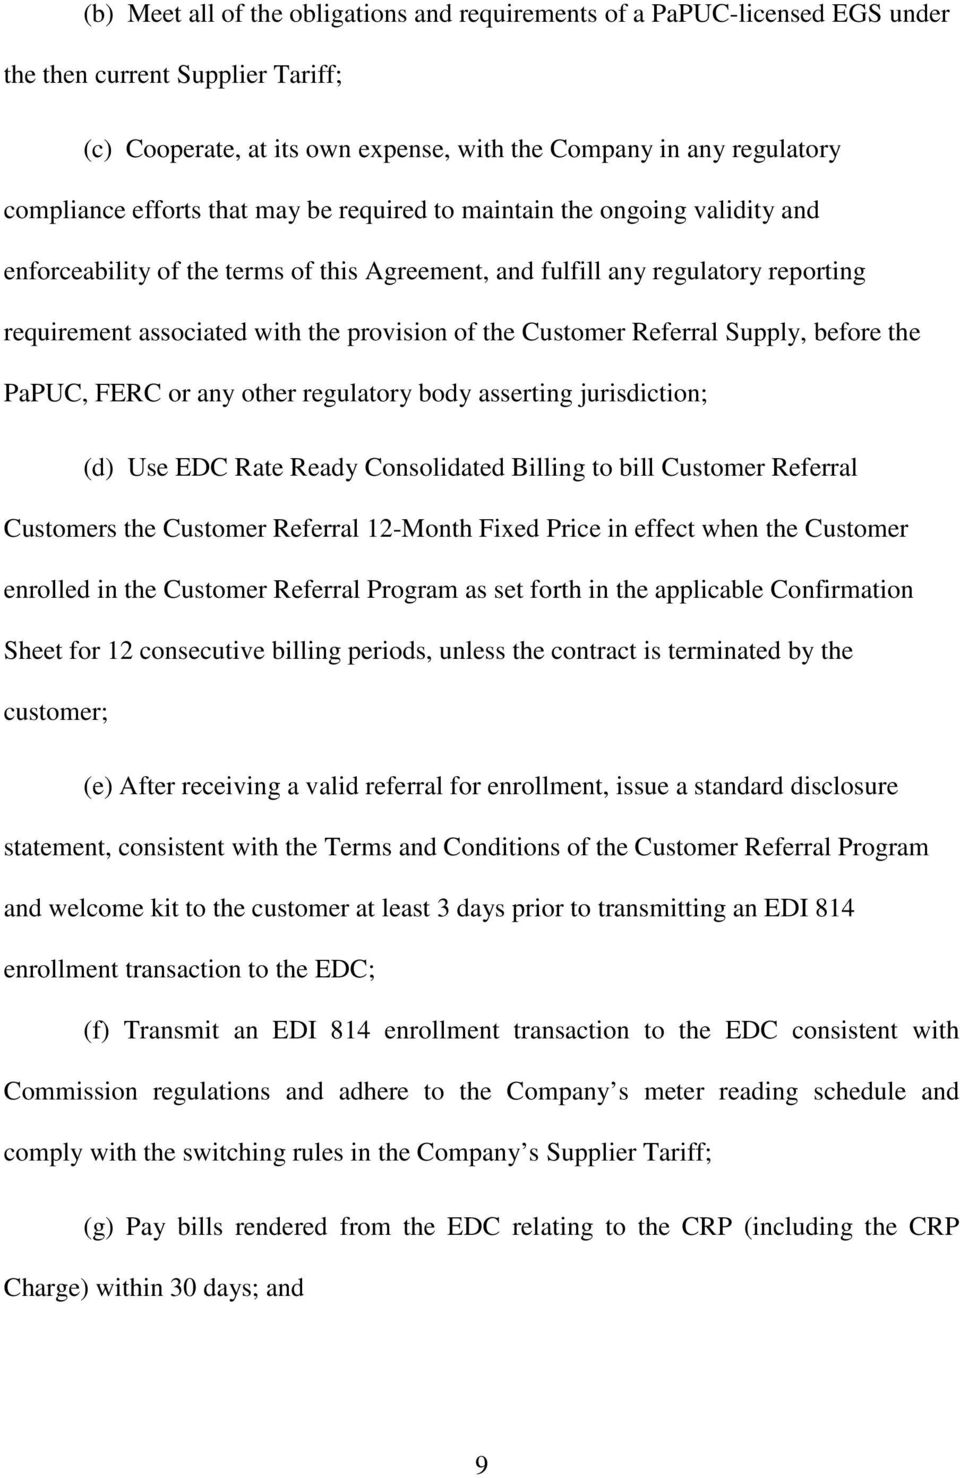 Customer Referral Supply, before the PaPUC, FERC or any other regulatory body asserting jurisdiction; (d) Use EDC Rate Ready Consolidated Billing to bill Customer Referral Customers the Customer